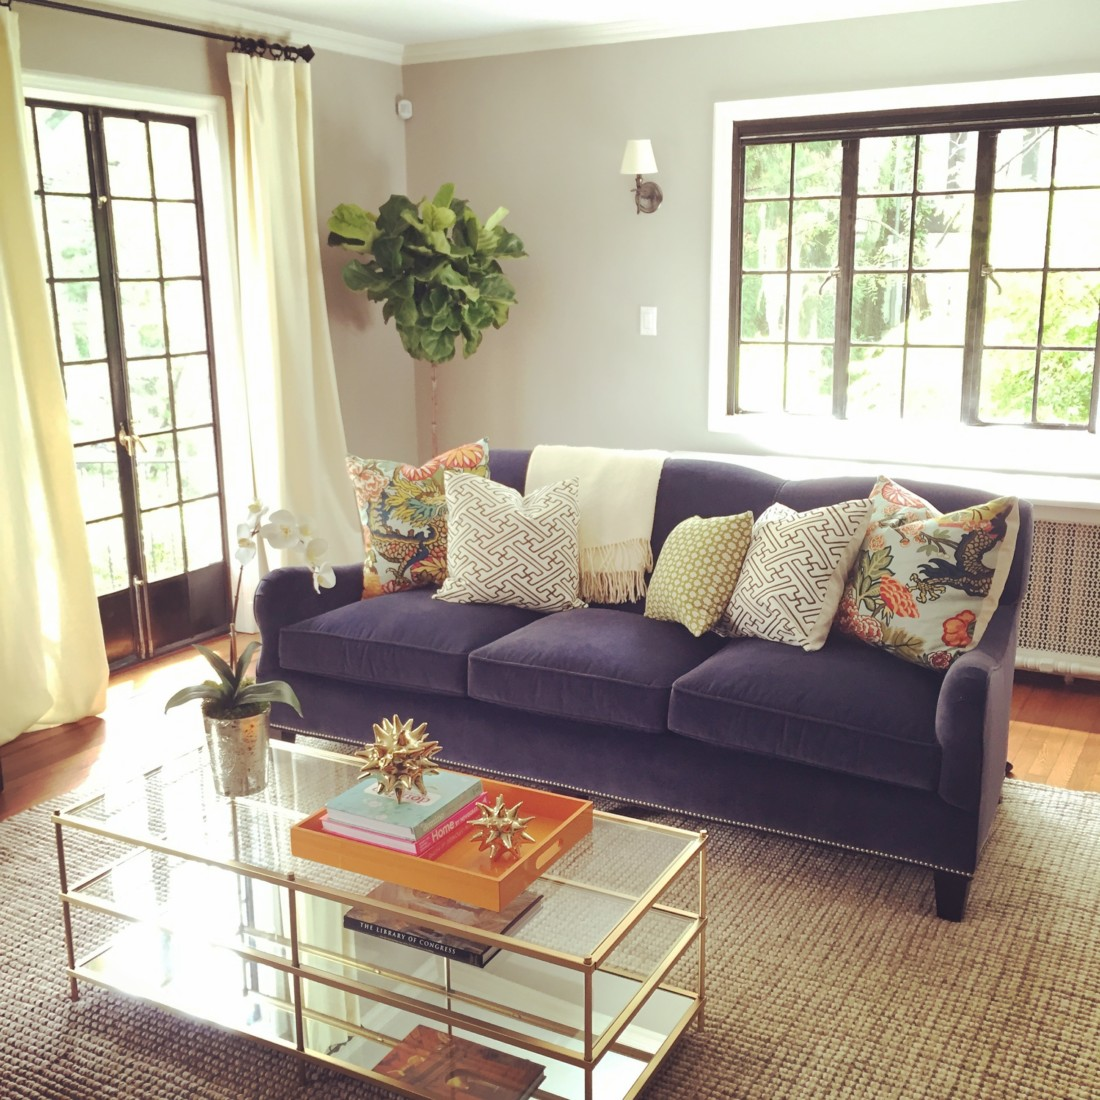 Sunny living room with a purple couch